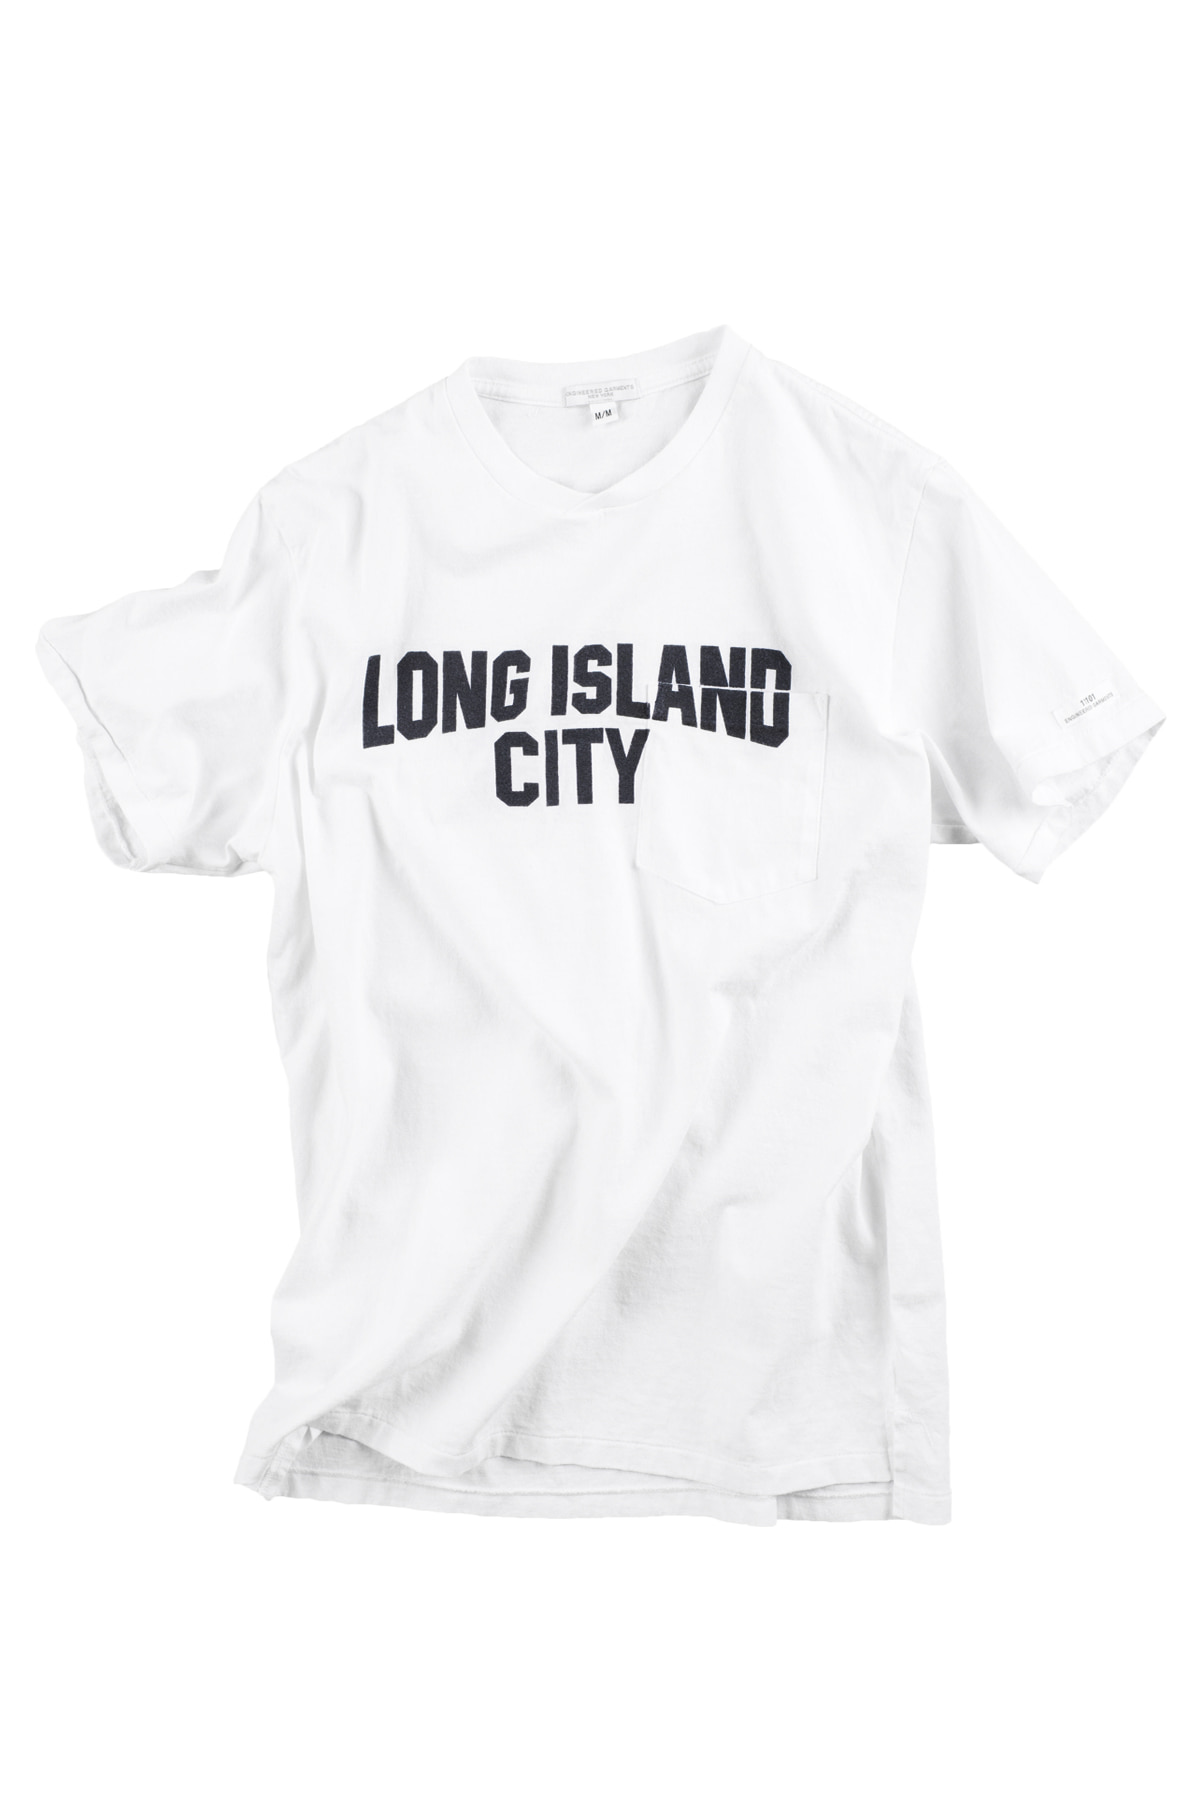 Engineered Garments : Printed T-Shirt (Long Island City)